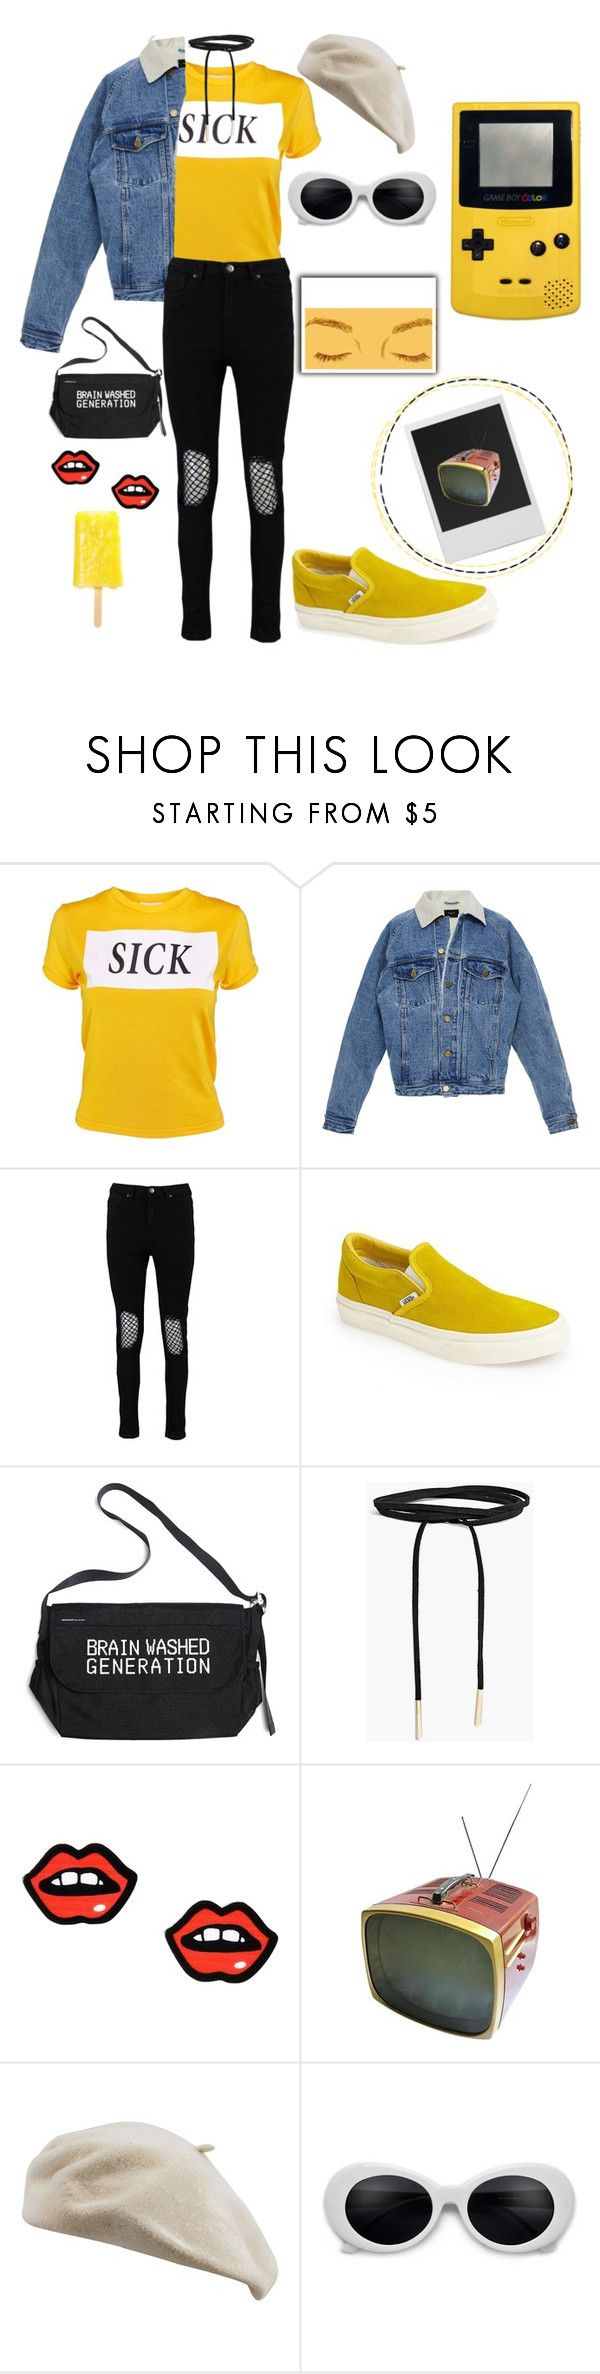 """""""*Nintendo music*"""" by lindacalderon ❤ liked on Polyvore featuring The Ragged Priest, Boohoo, Vans, Undercover, George J. Love, Polaroid and Victor"""